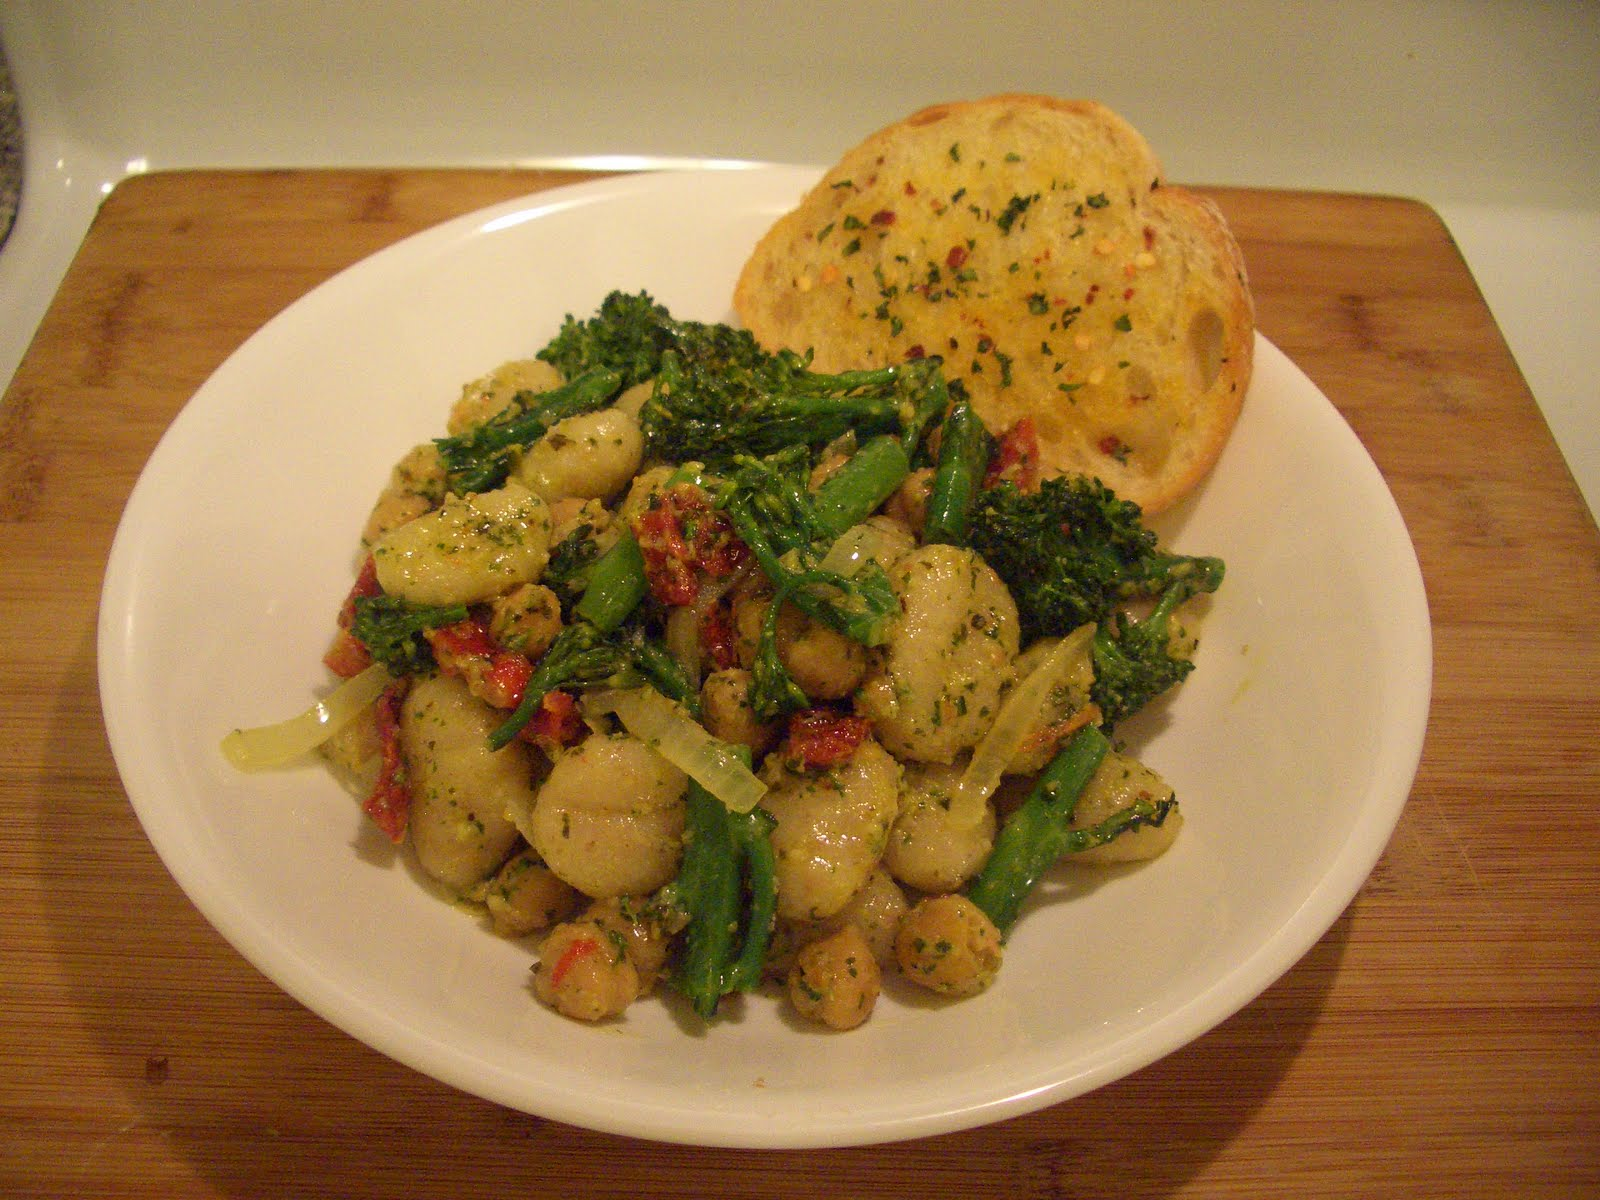 Invariably Vegan: Pesto Gnocchi with Sundried Tomatoes and Broccolini